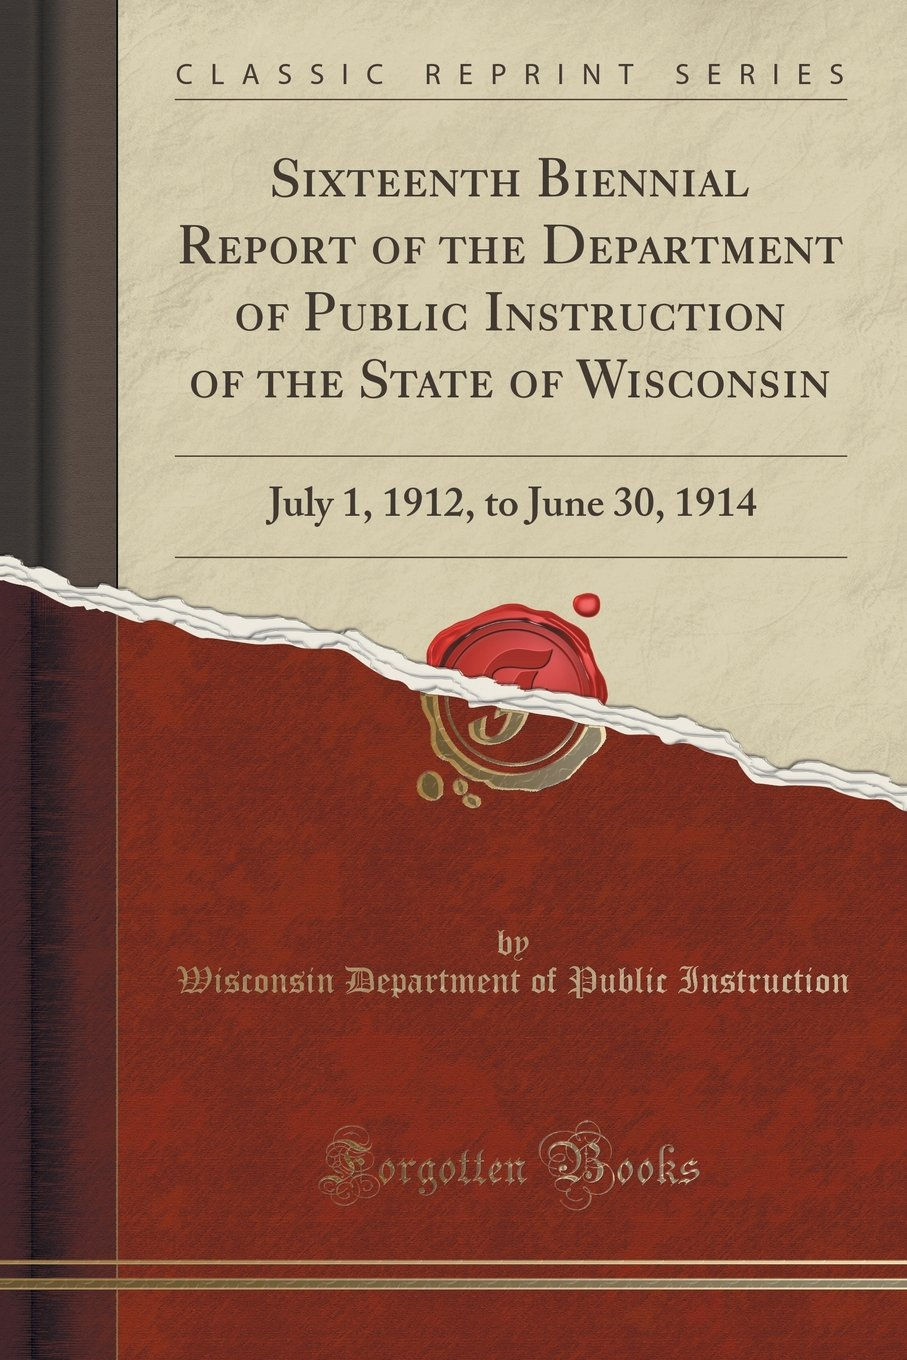 Download Sixteenth Biennial Report of the Department of Public Instruction of the State of Wisconsin: July 1, 1912, to June 30, 1914 (Classic Reprint) pdf epub